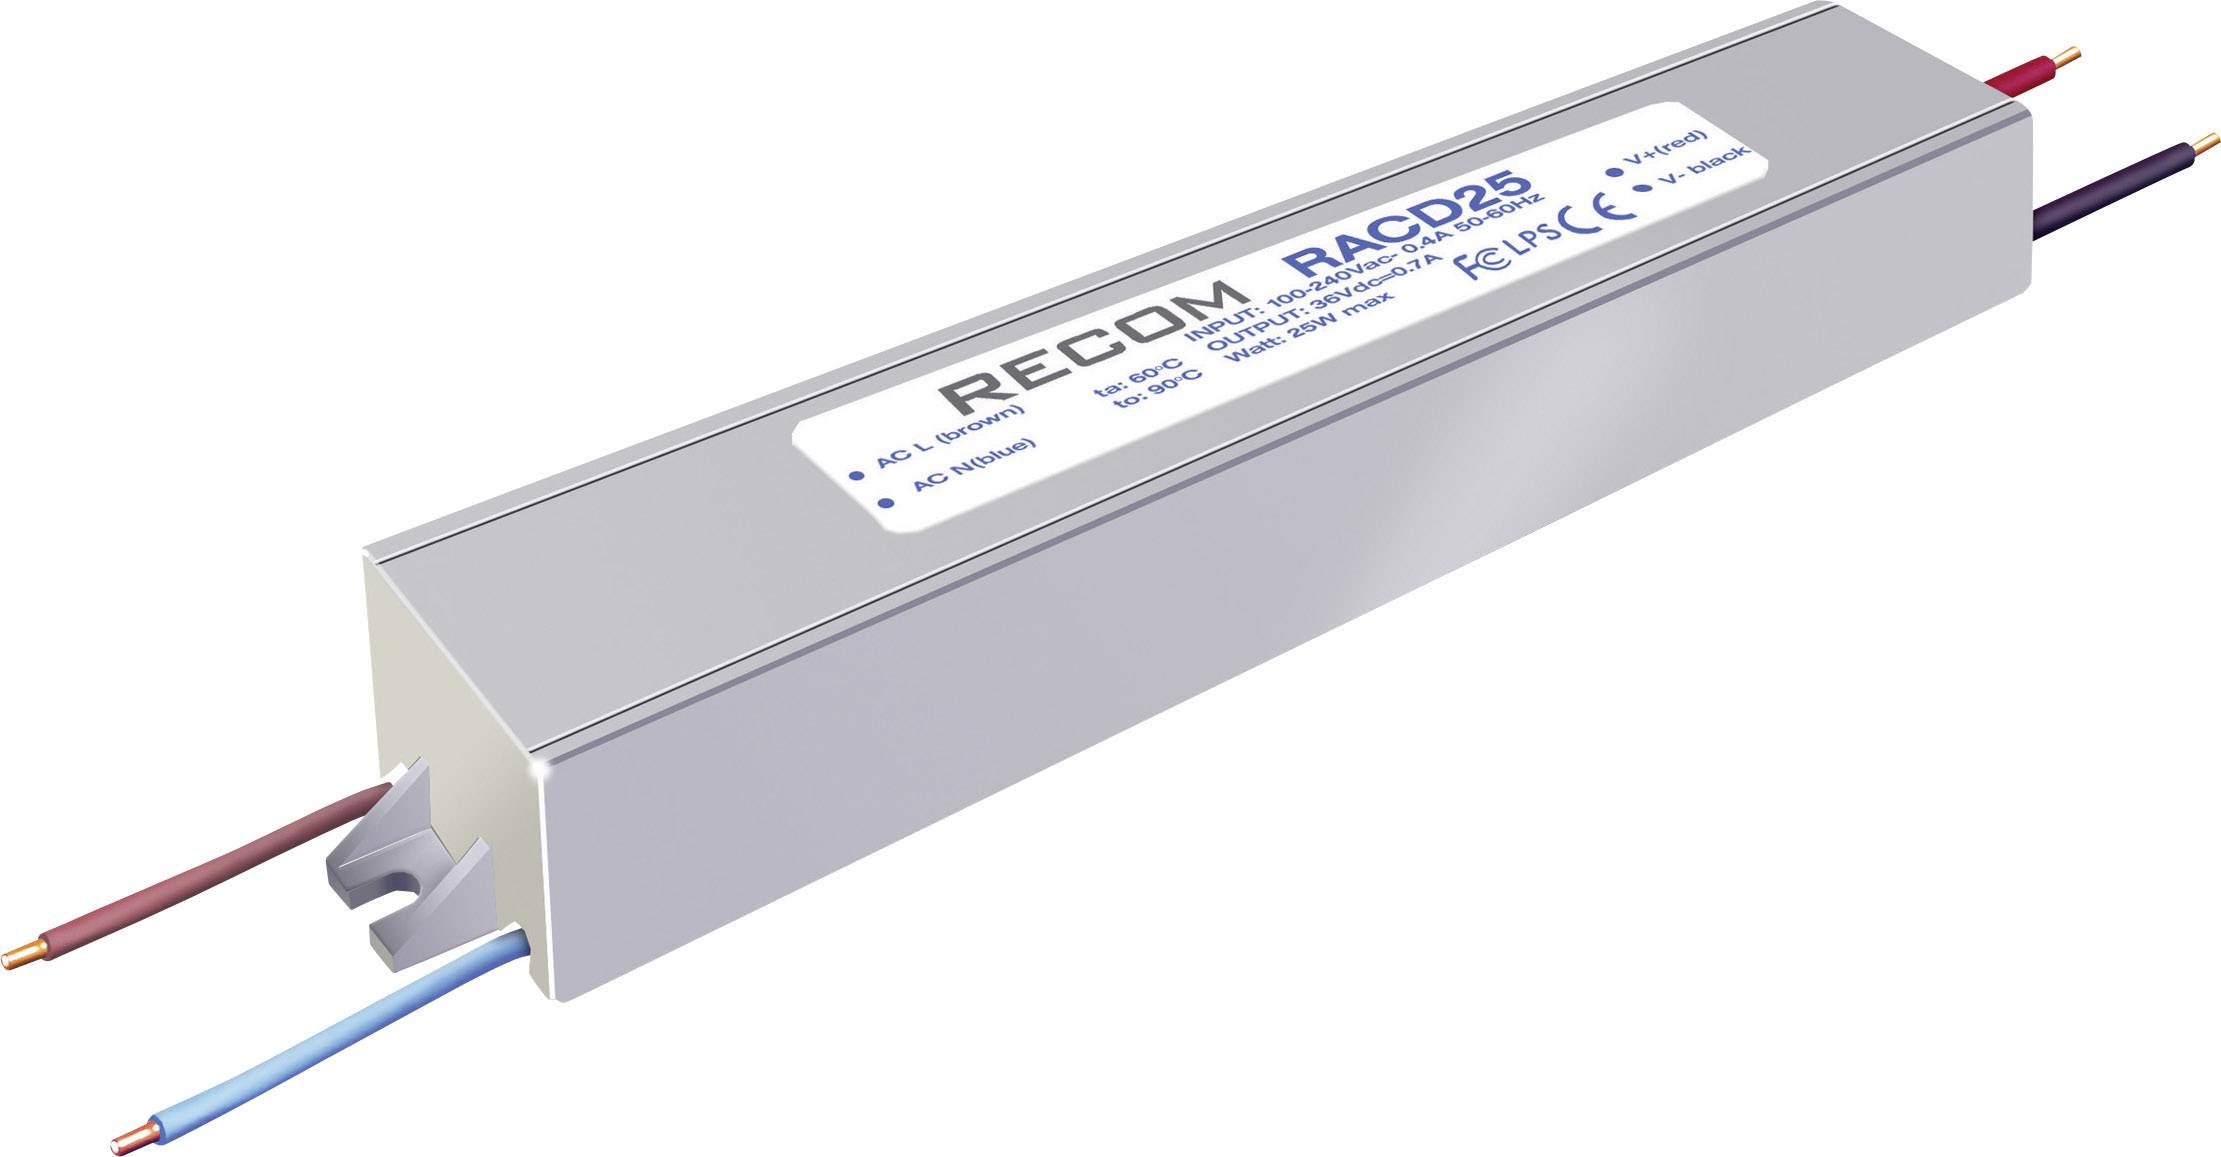 LED driver Recom Lighting RACD25-1050P, 25 W (max), 1.05 A, 16 - 24 V/DC